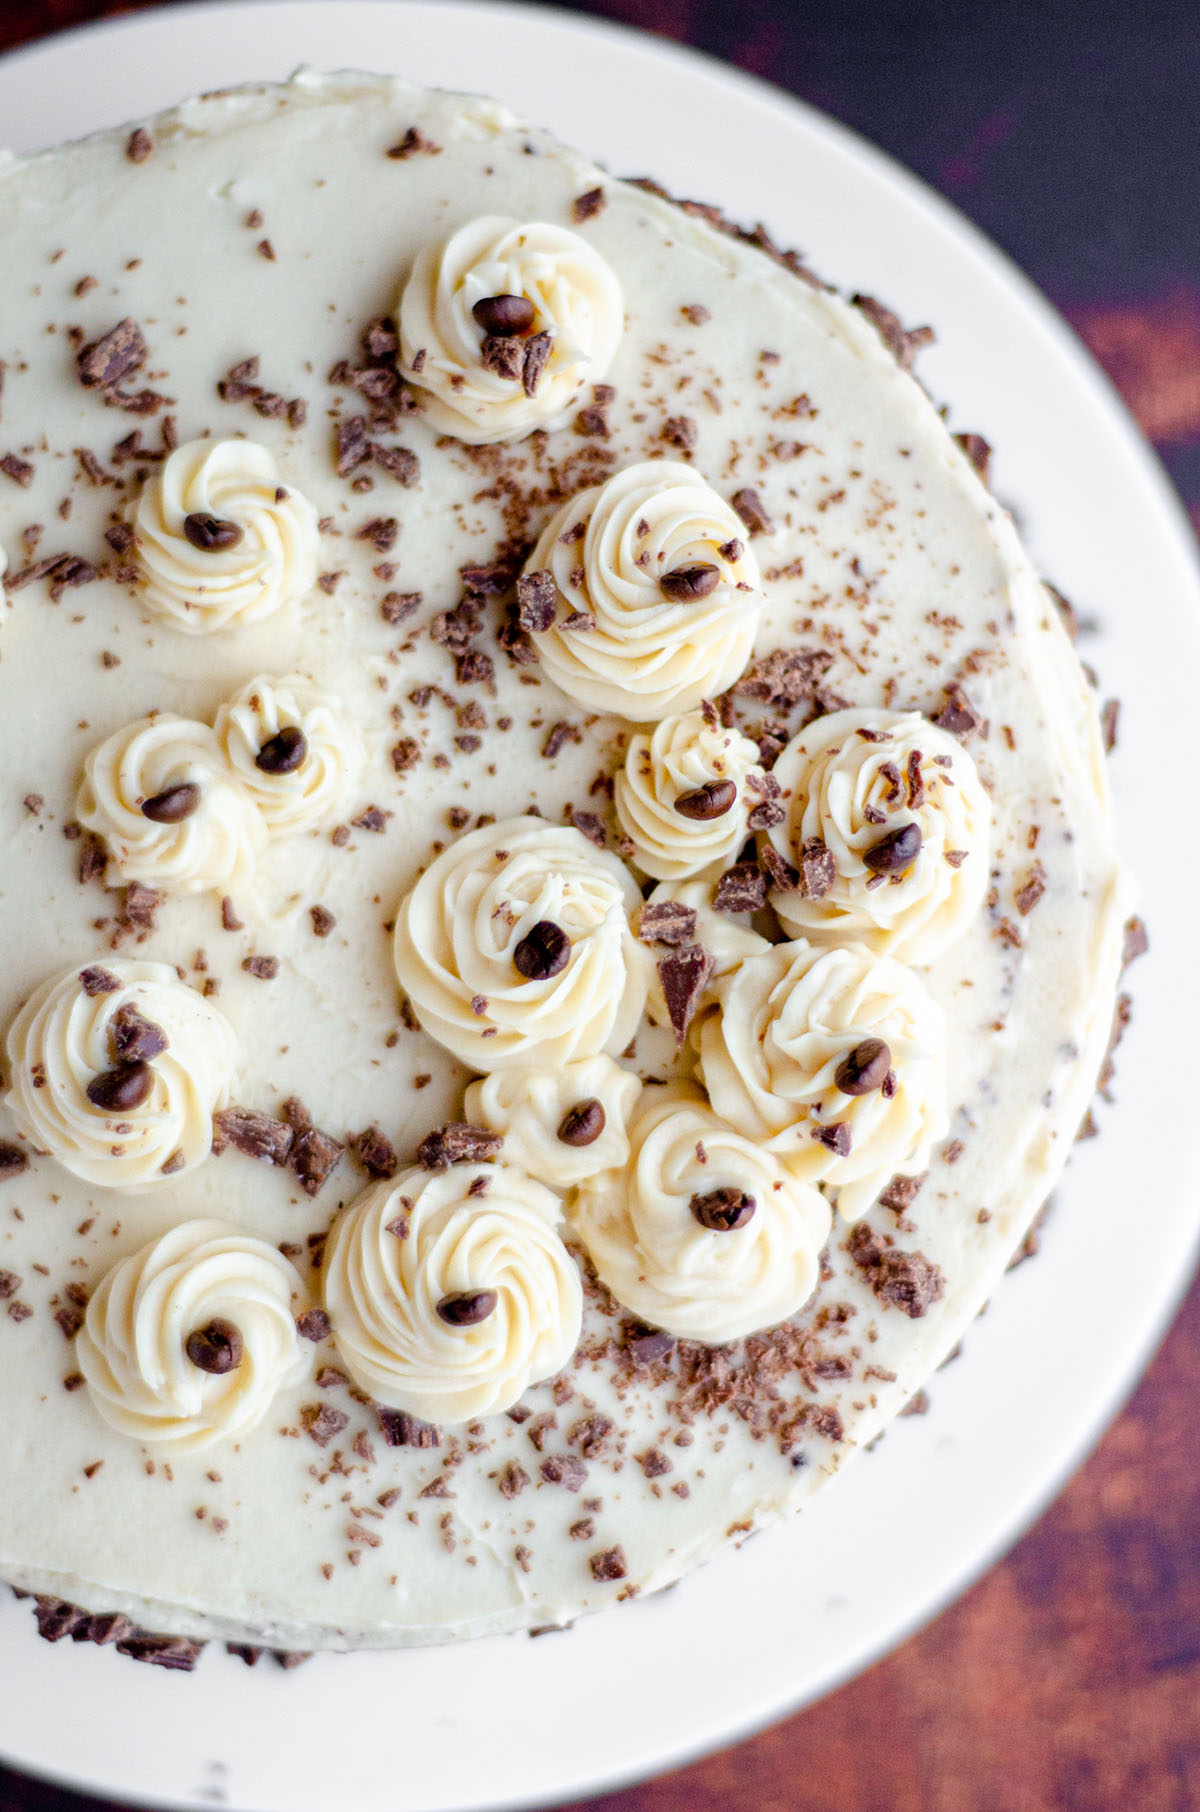 aerial photo of mocha cake with coffee buttercream decorated with chunks of chocolate and coffee beans